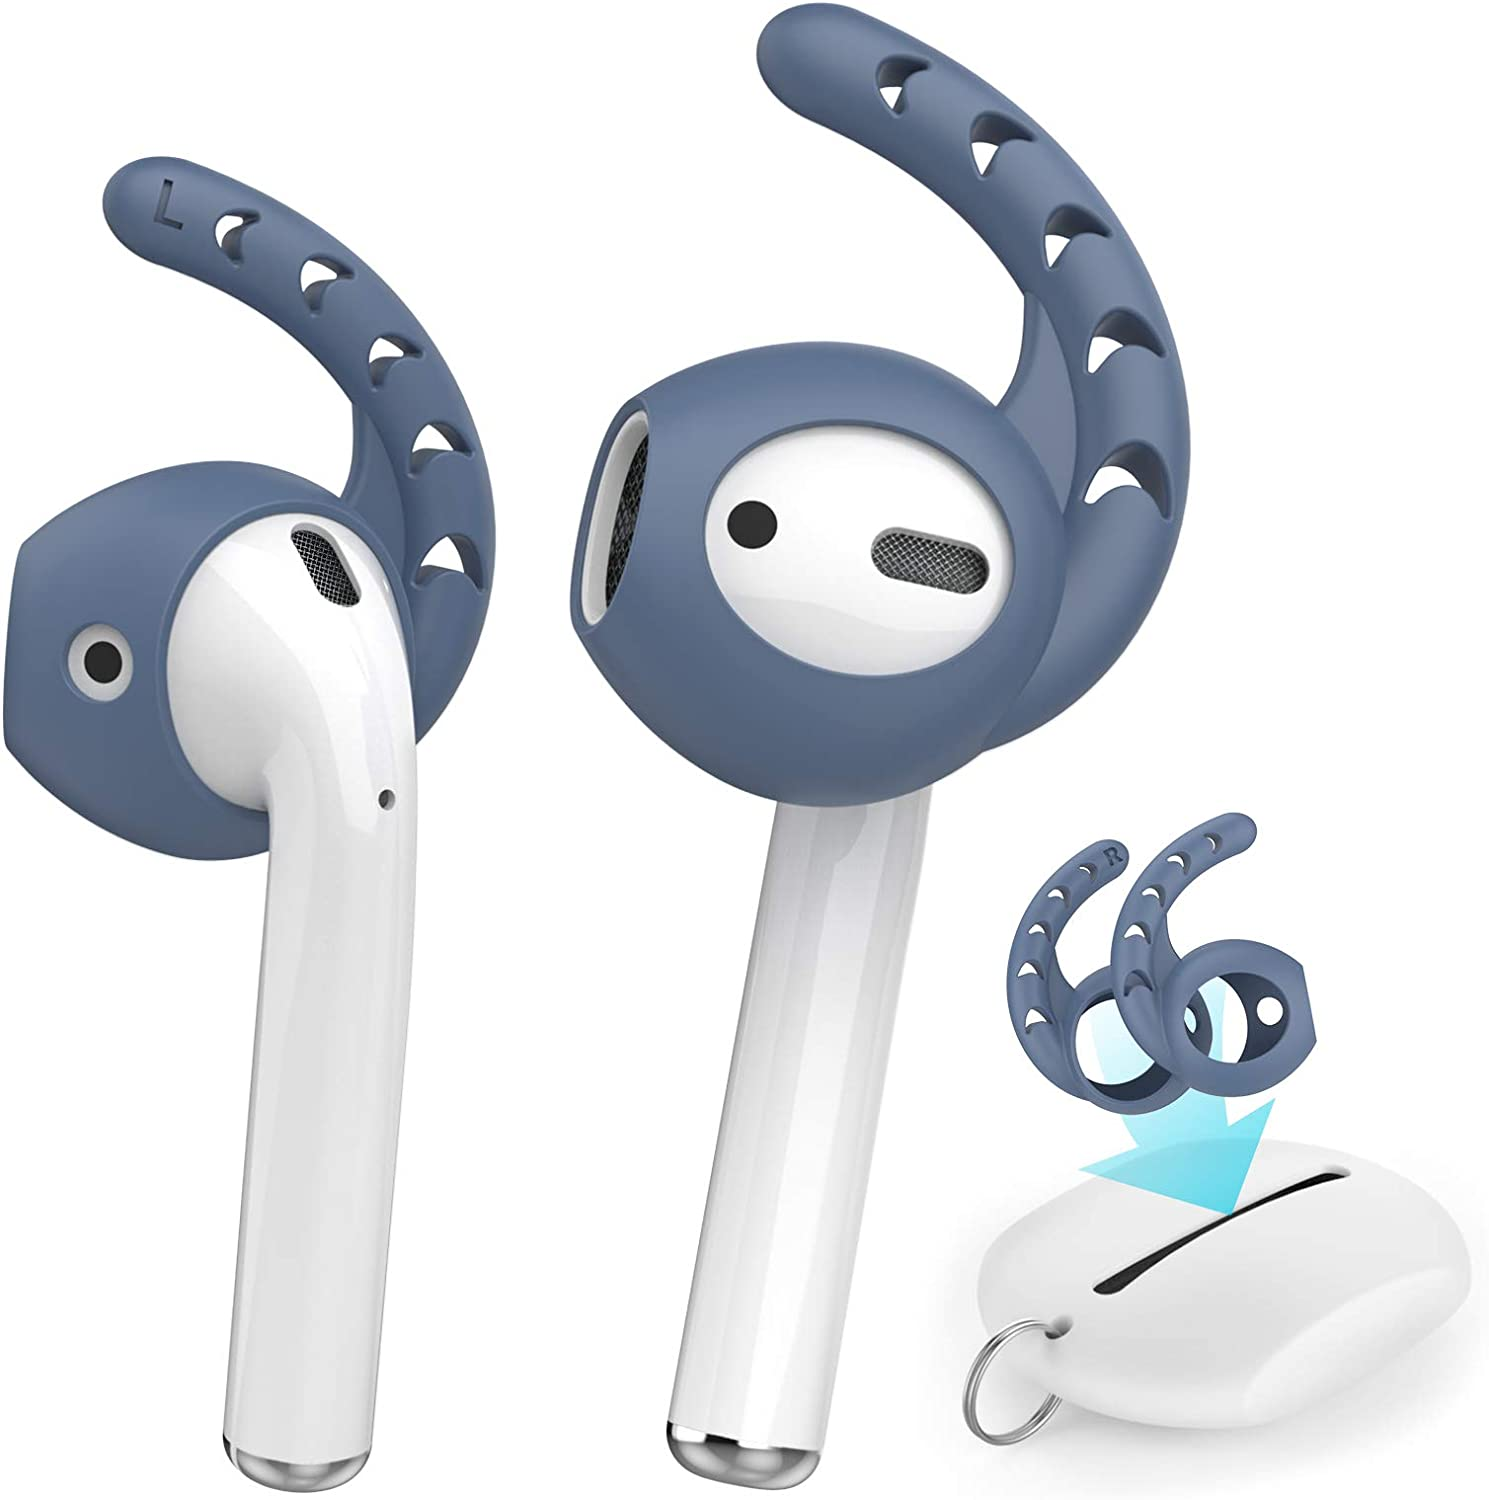 AhaStyle 3 Pairs AirPods Ear Hooks Silicone Accessories [Added Storage Pouch ] Compatible with Apple AirPods 1 and 2 or EarPods Headphones(Navy Blue)